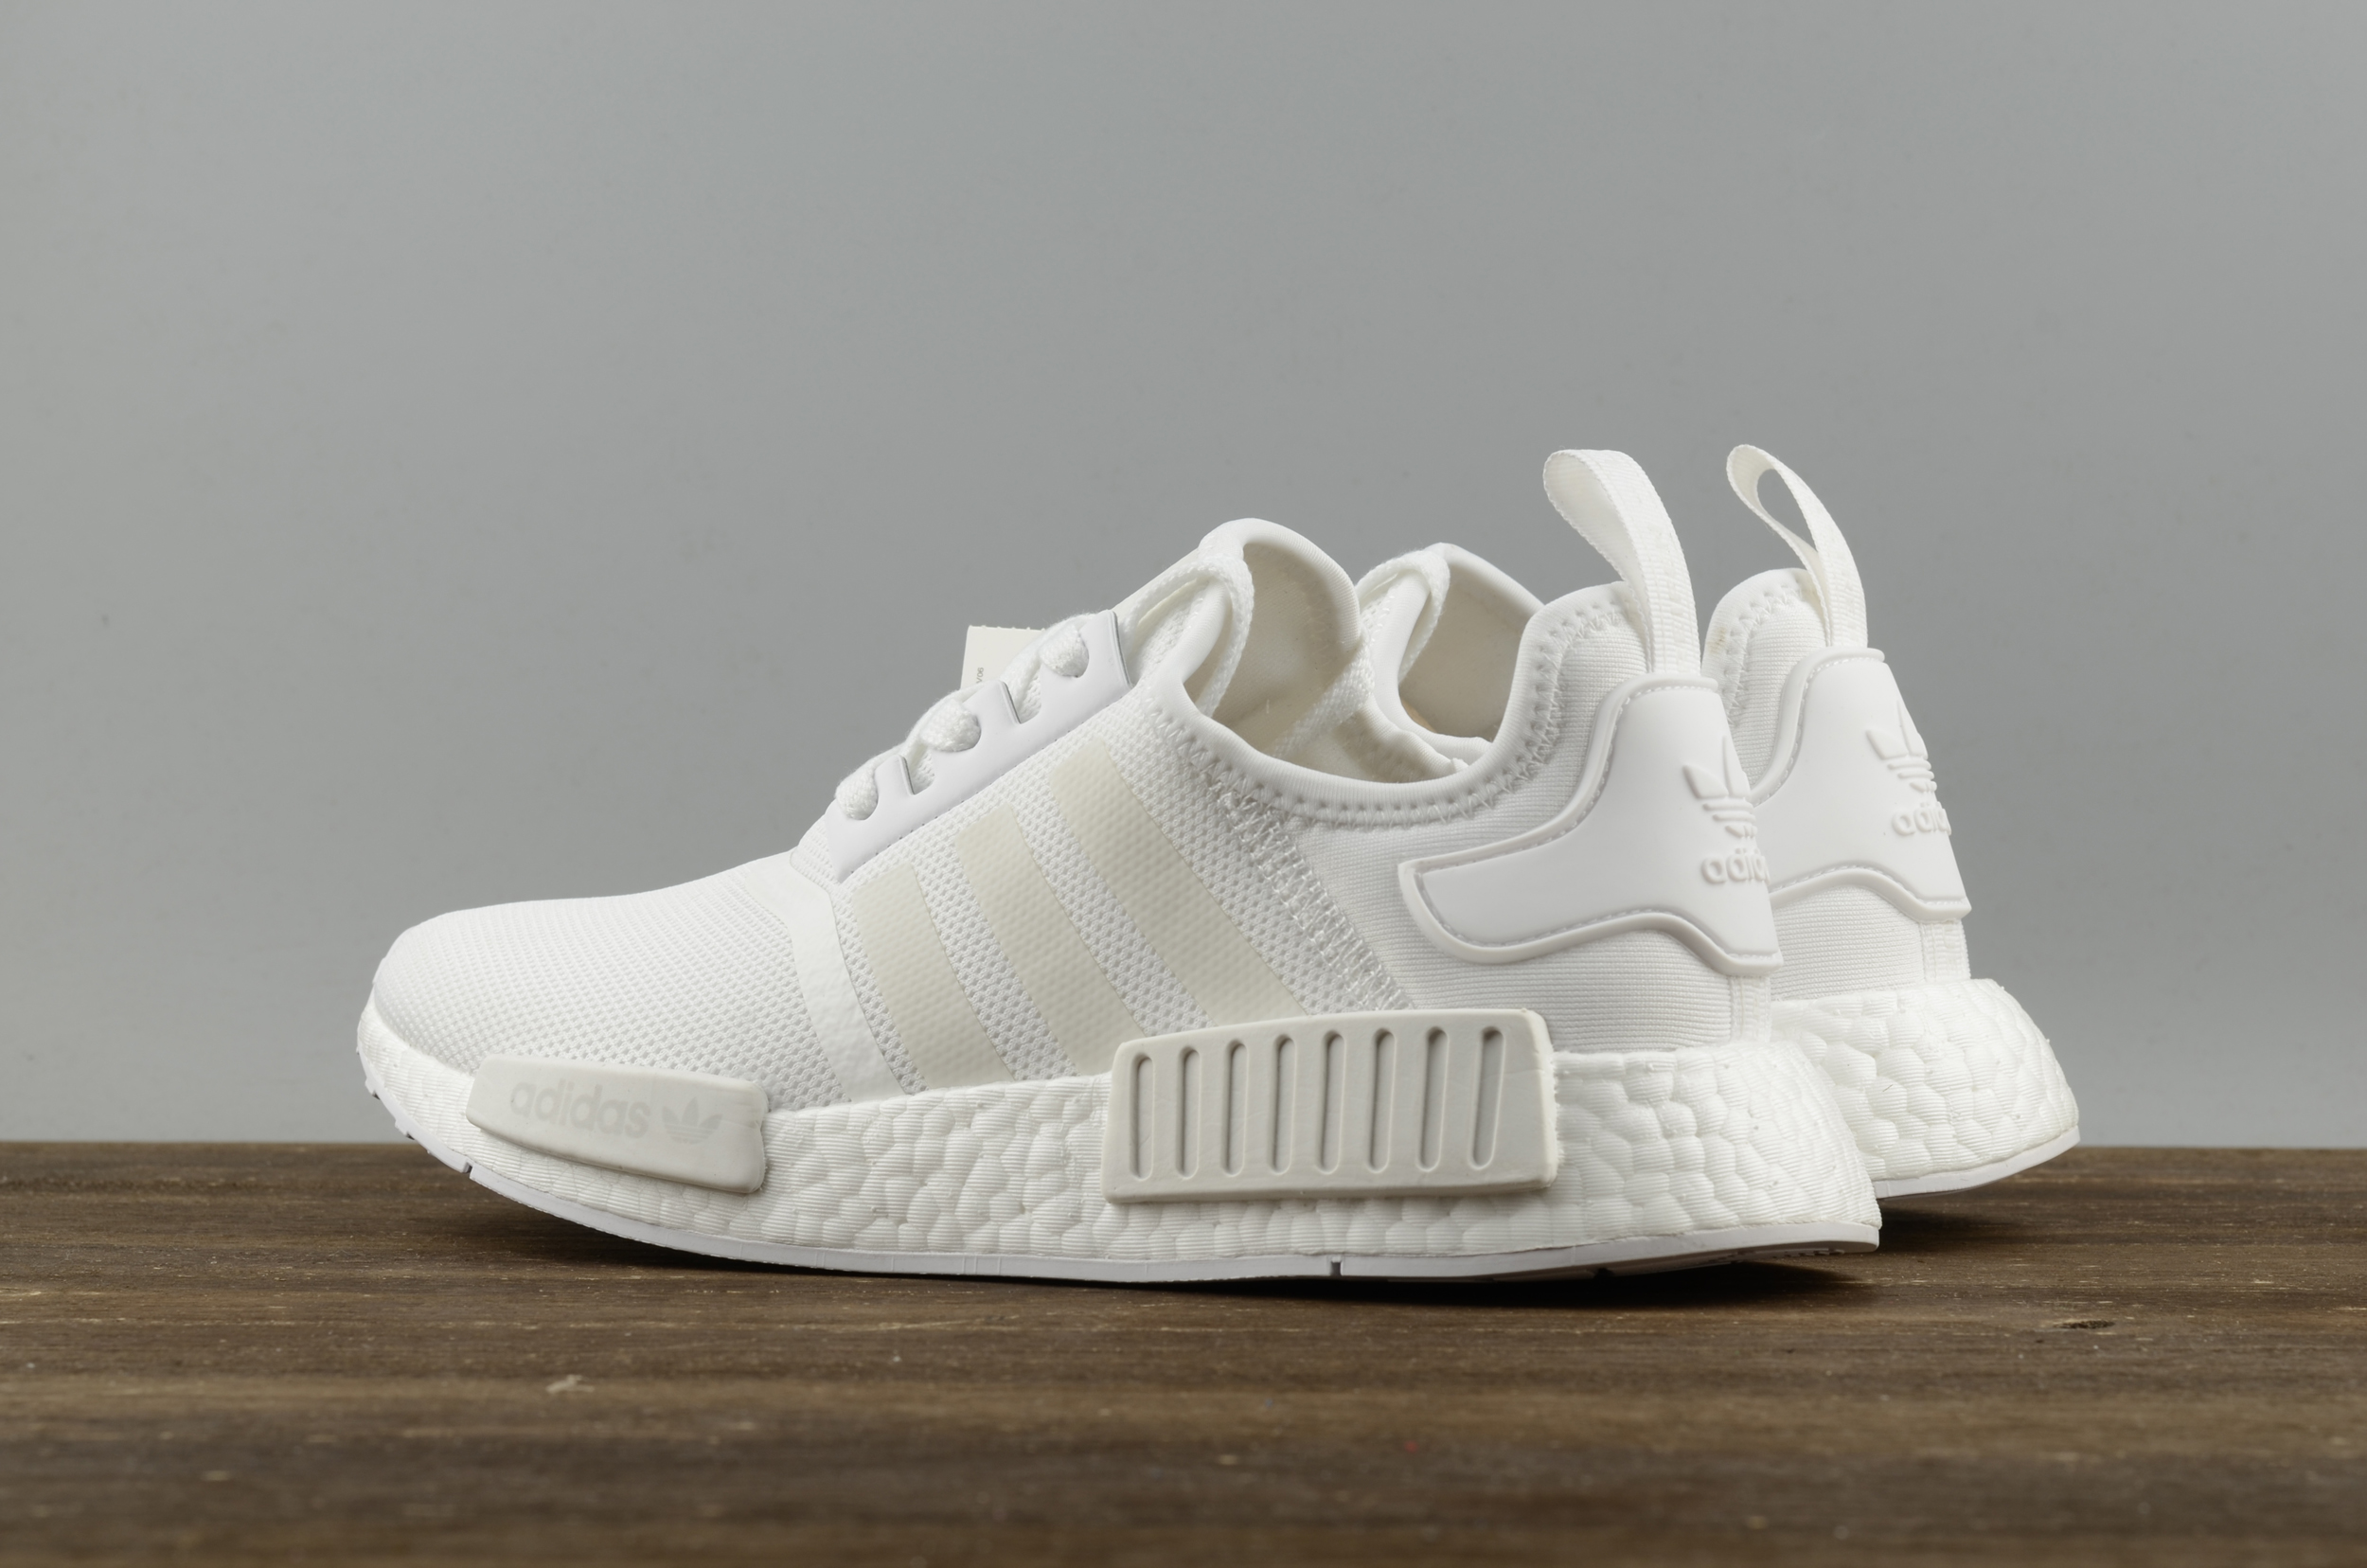 f69d8068d0aa8 Adidas NMD R1 Boost All white runner shoes · superstar · Online ...